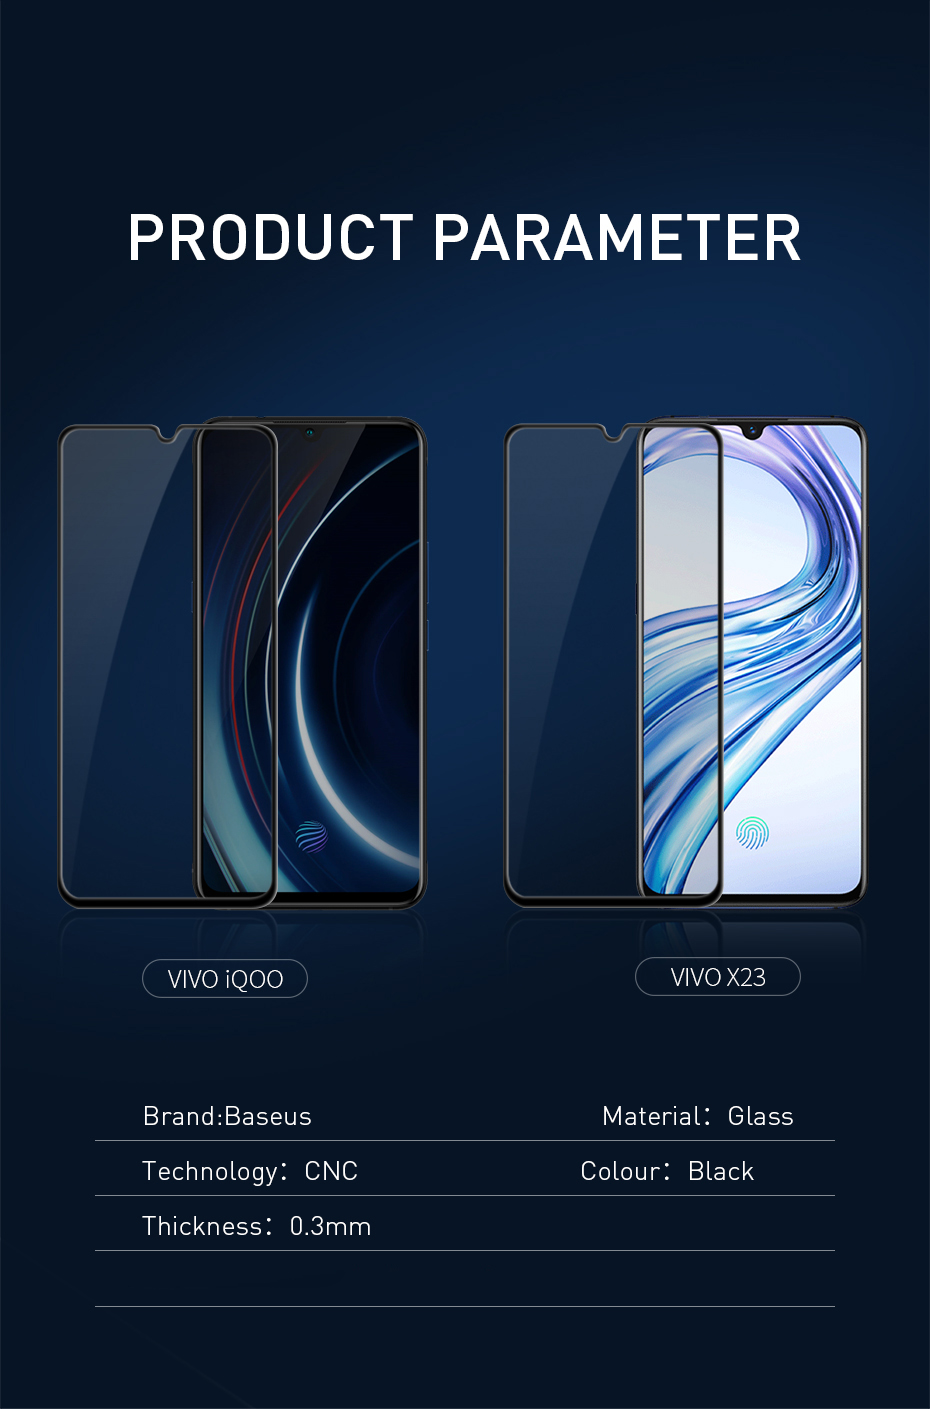 Baseus 0.3mm All-screen Arc-surface Anti-bluelight Tempered Glass Film For Vivo X23iQOO Black_13.jpg